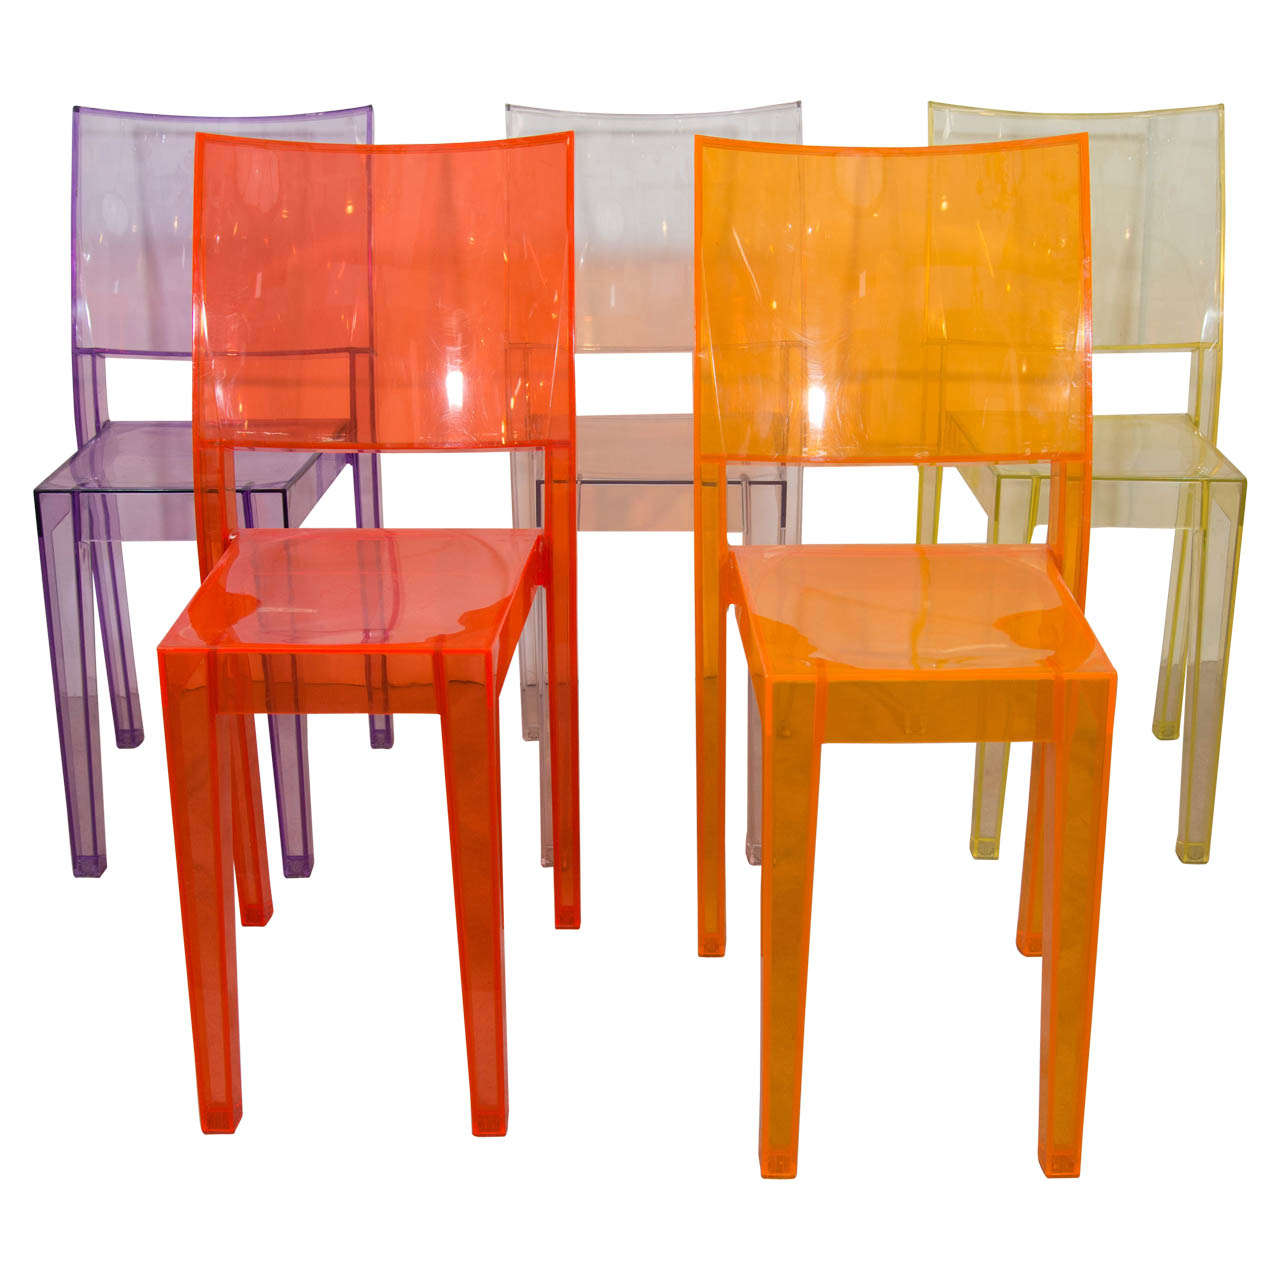 Three philippe starck la marie chairs for sale at 1stdibs for Chaise la marie starck